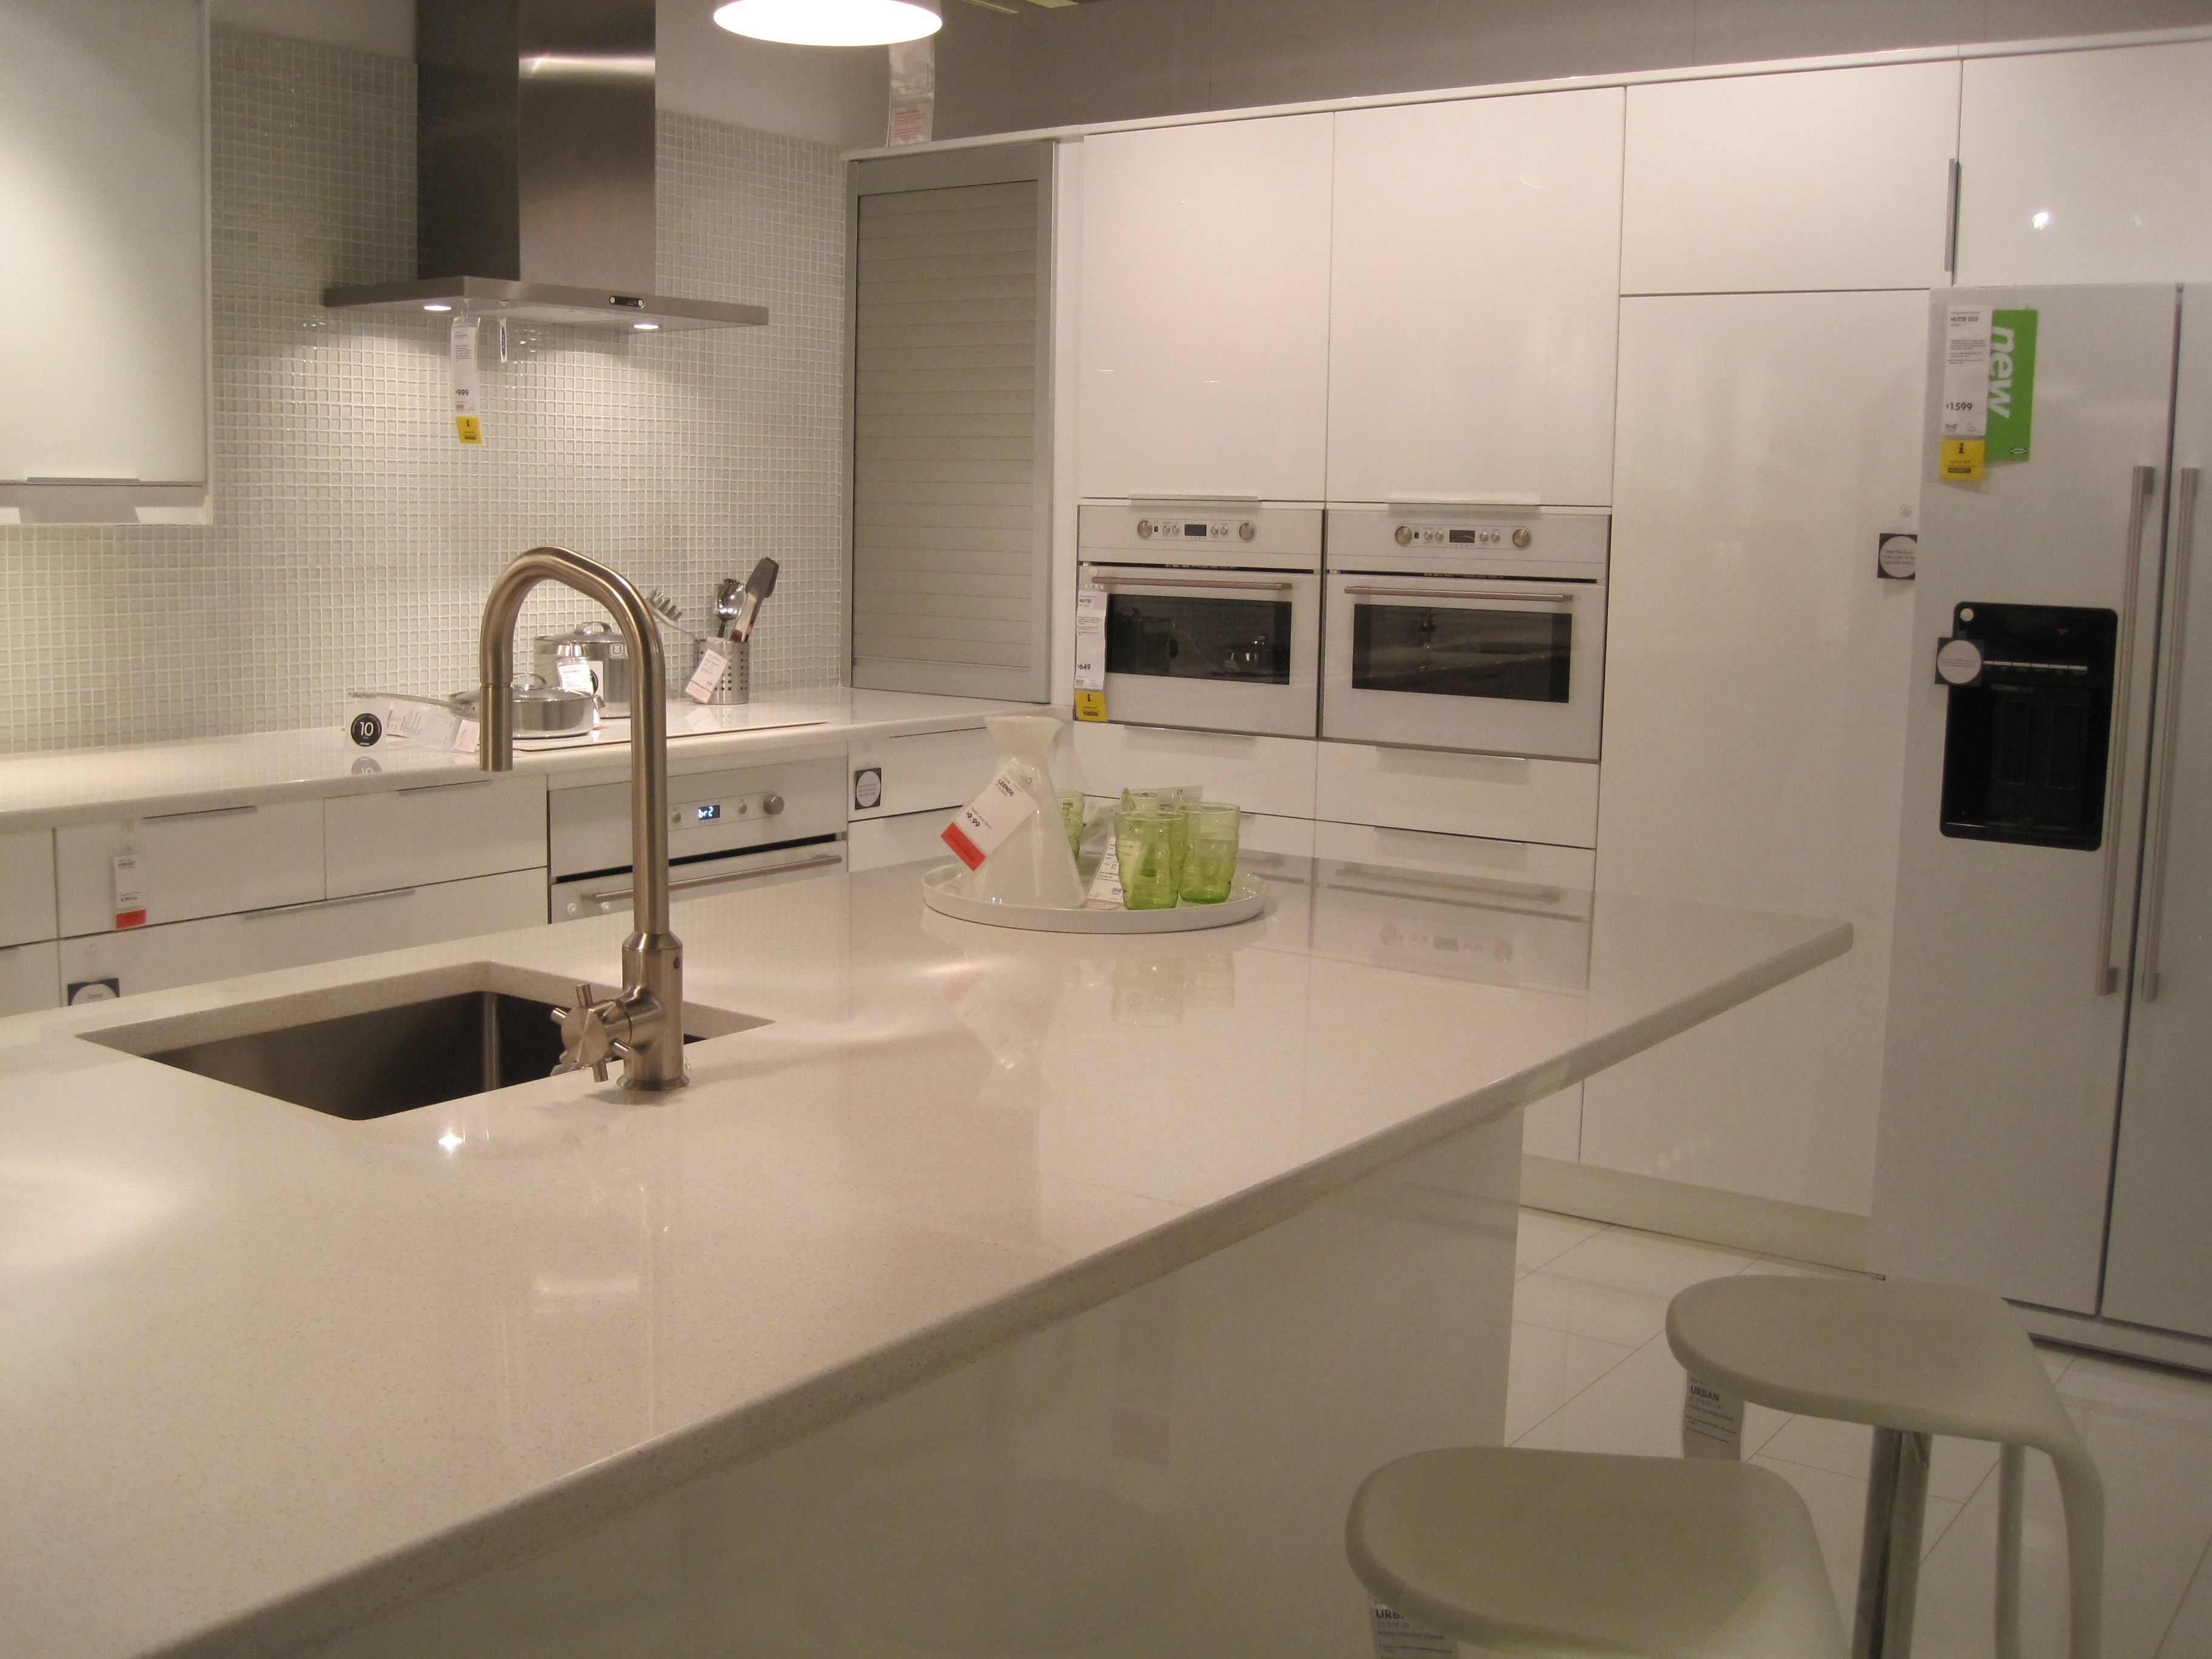 Like This High Gloss White Abstrakt Kitchen At Ikea That